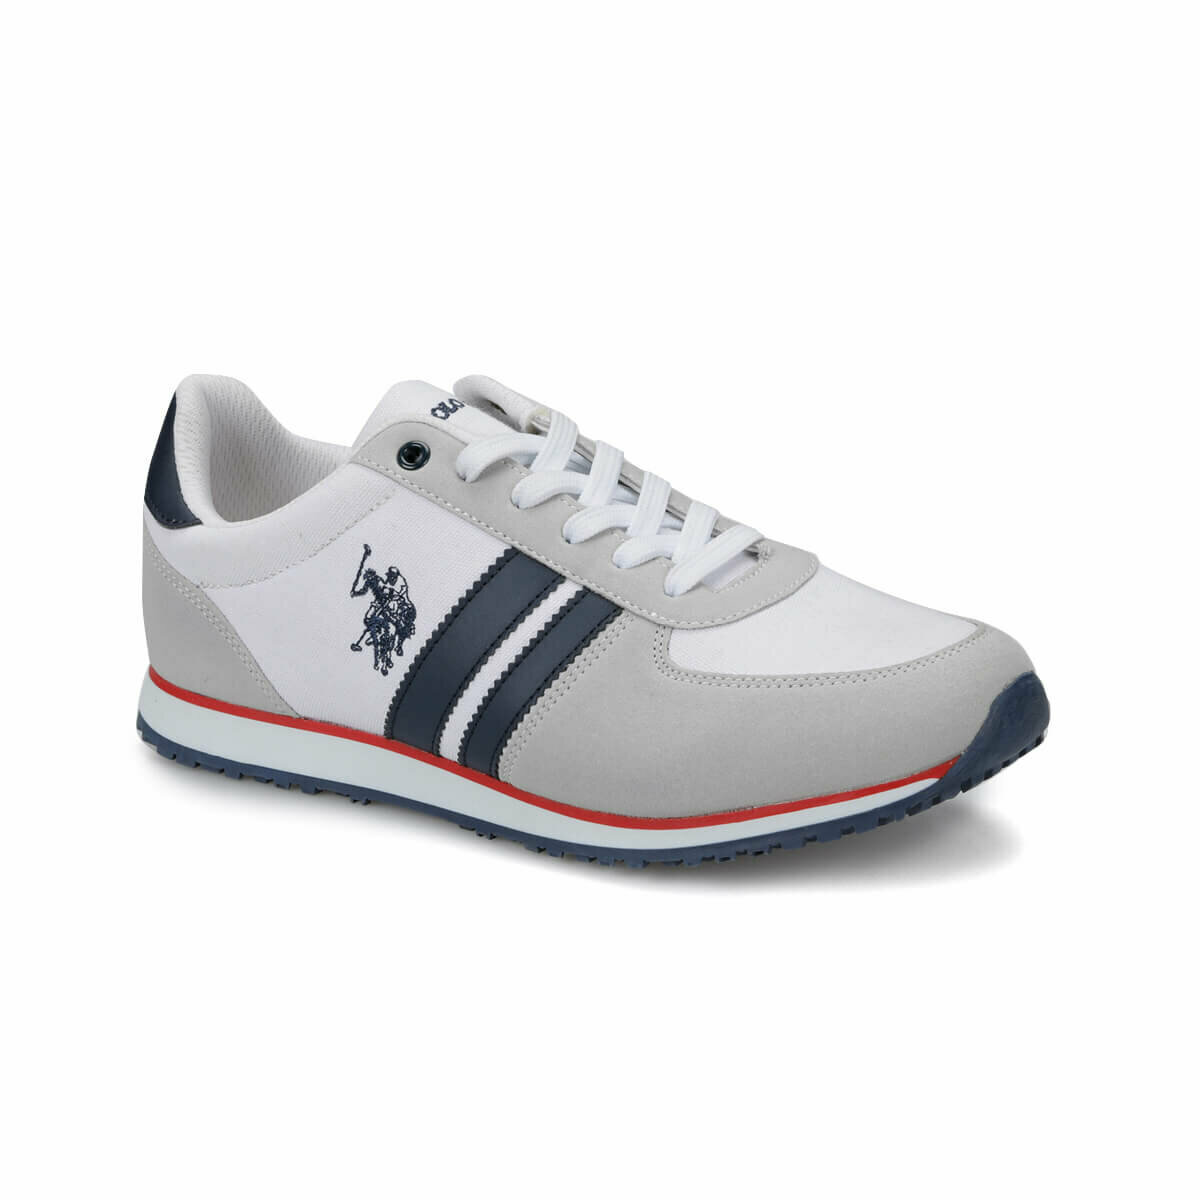 FLO PLUS White Men 'S Sneaker Shoes U.S. POLO ASSN.